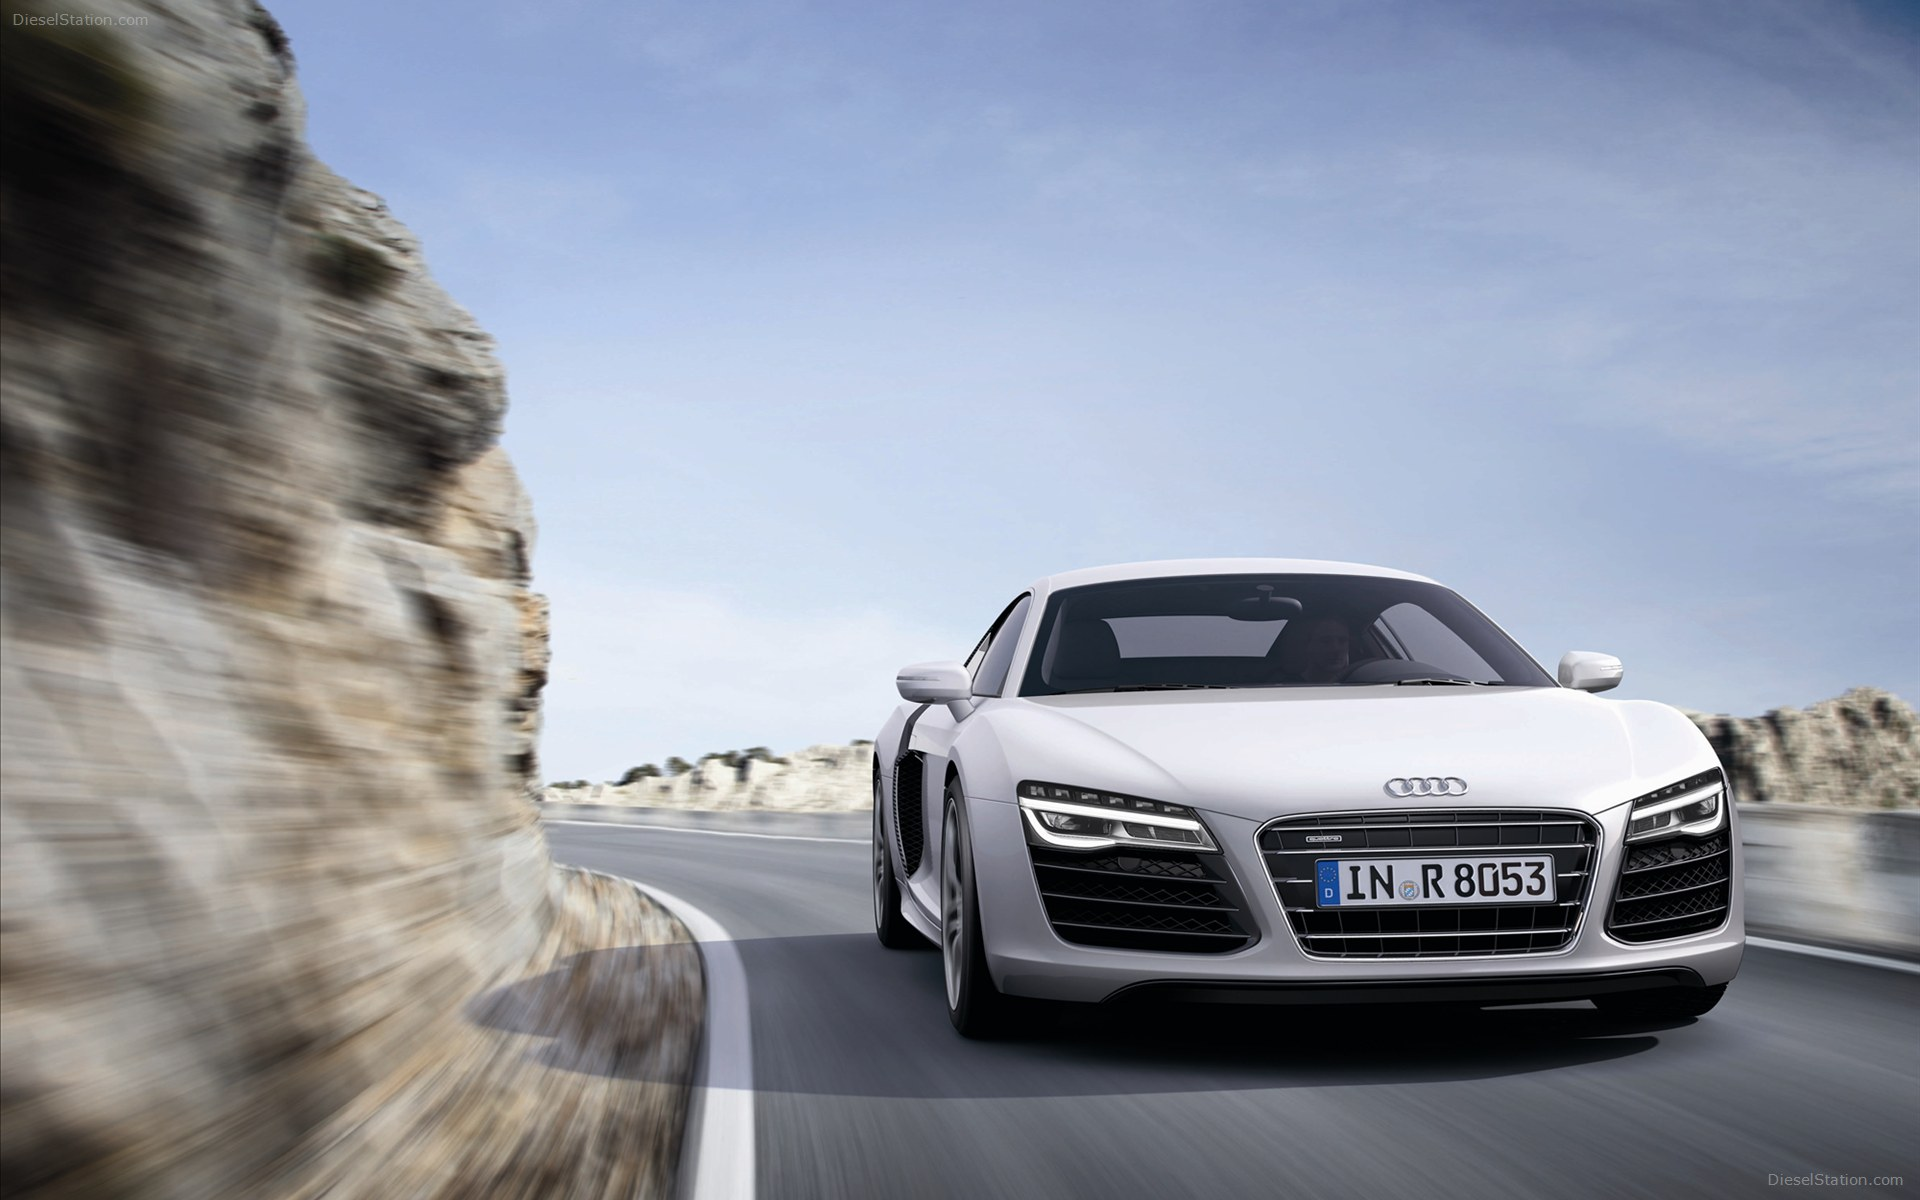 Awesome Audi R8 Wallpaper For Android | Audi Automotive Design